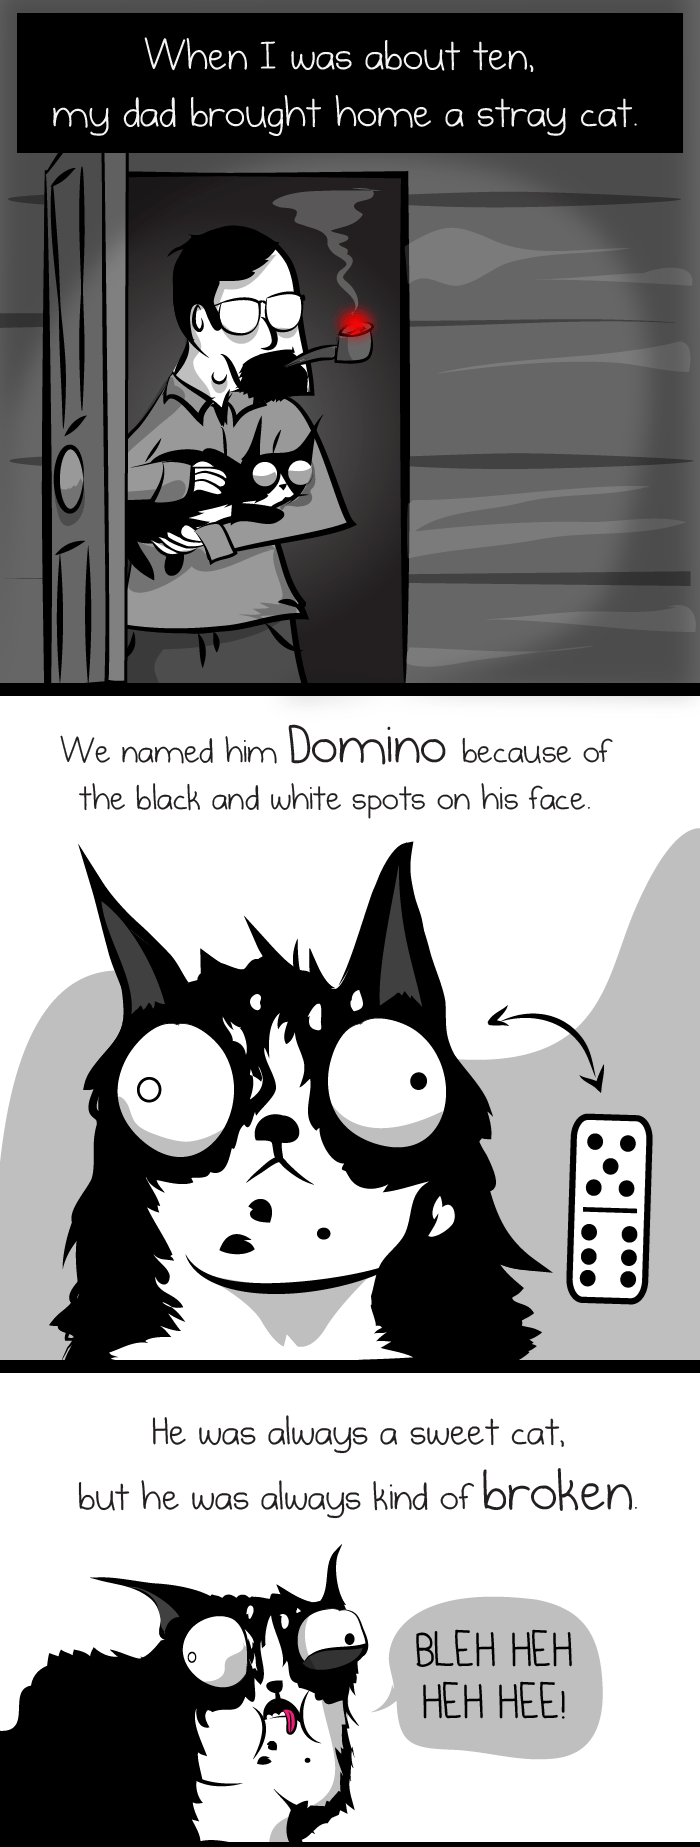 Cartoon - When I was about ten, my dad brought home a stray cat. We named him Domino because of the black and white spots on his face. He was always a sweet cat, but he was always kind of broken. BLEH HEH НЕН Н!